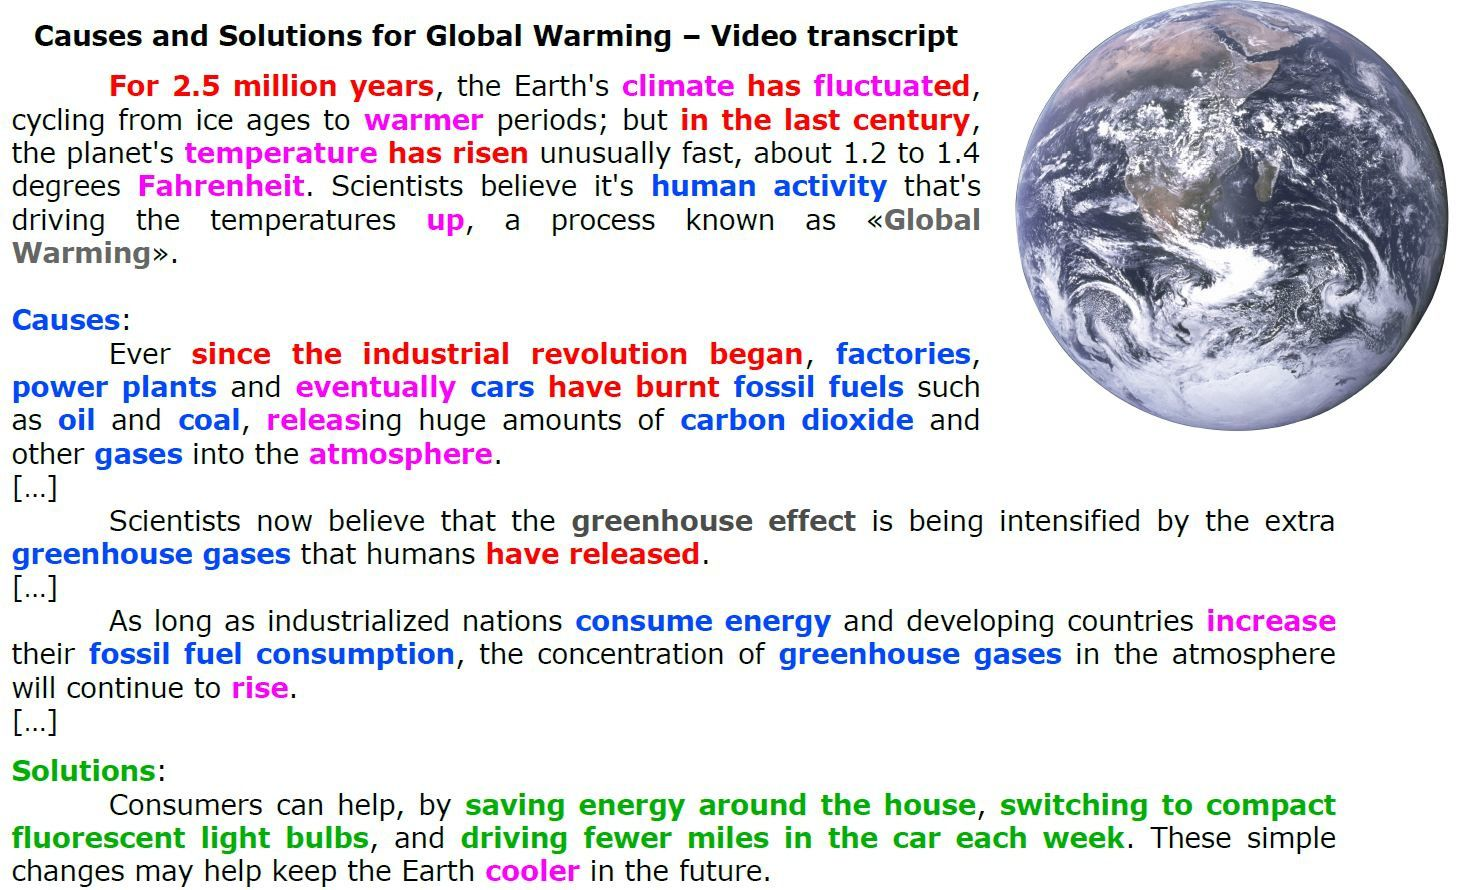 consequences of global warming caused by industrialization Global warming, the gradual heating of earth's surface, oceans and atmosphere, is caused by human activity, primarily the burning of fossil fuels that pump carbon dioxide (co2), methane and other greenhouse gases into the atmosphere.